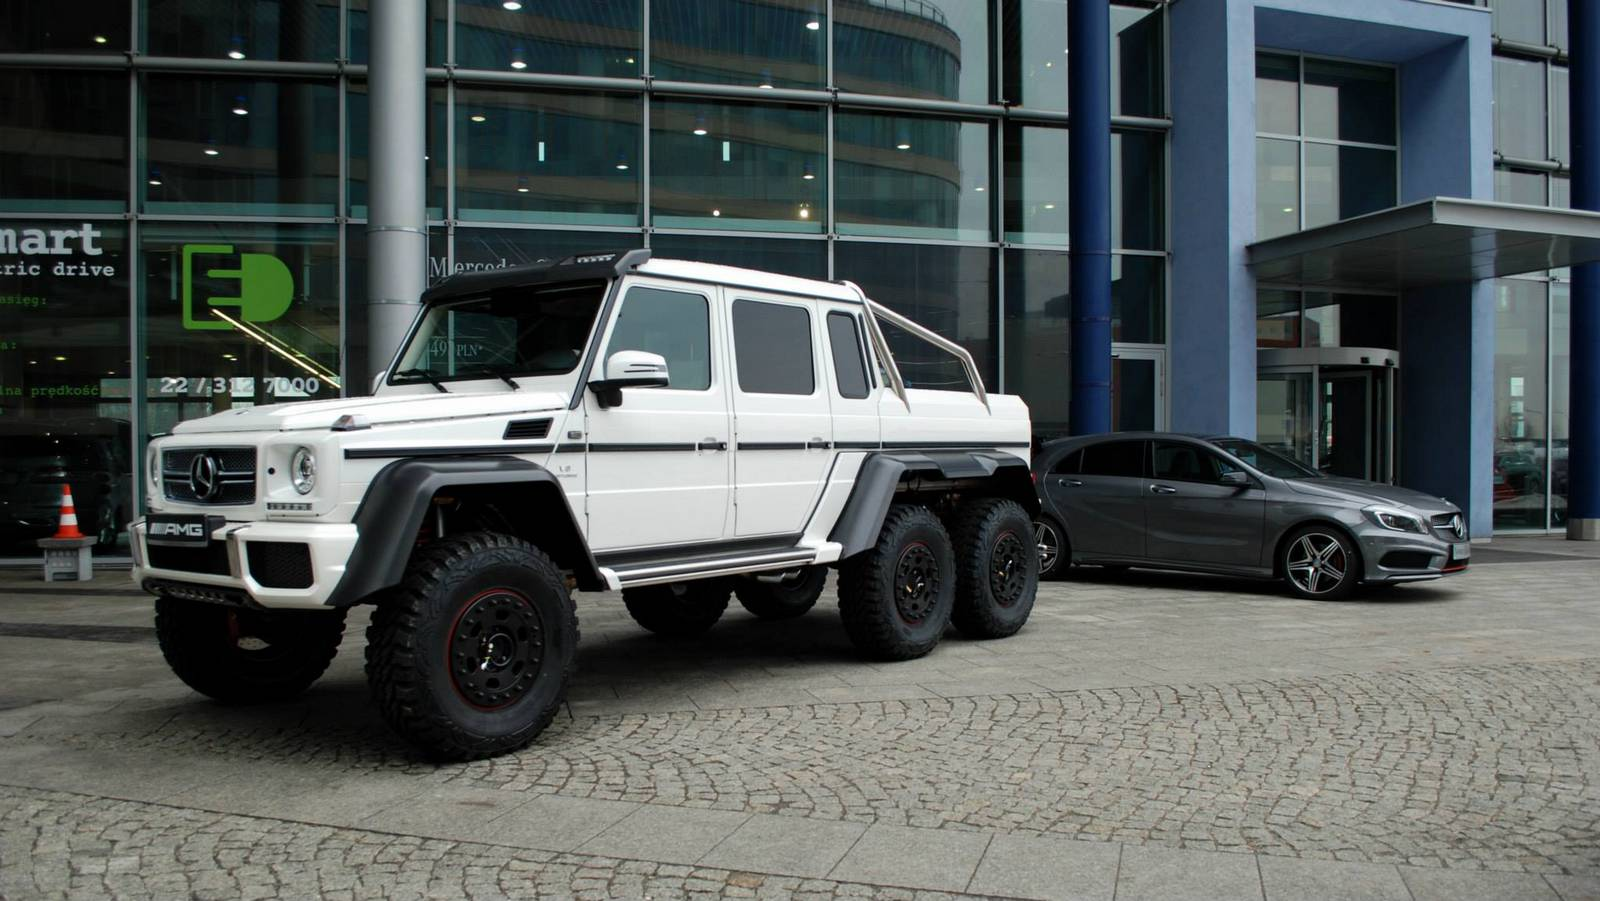 Mercedes benz amg 6x6 for sale autos post for Mercedes benz g63 6x6 for sale